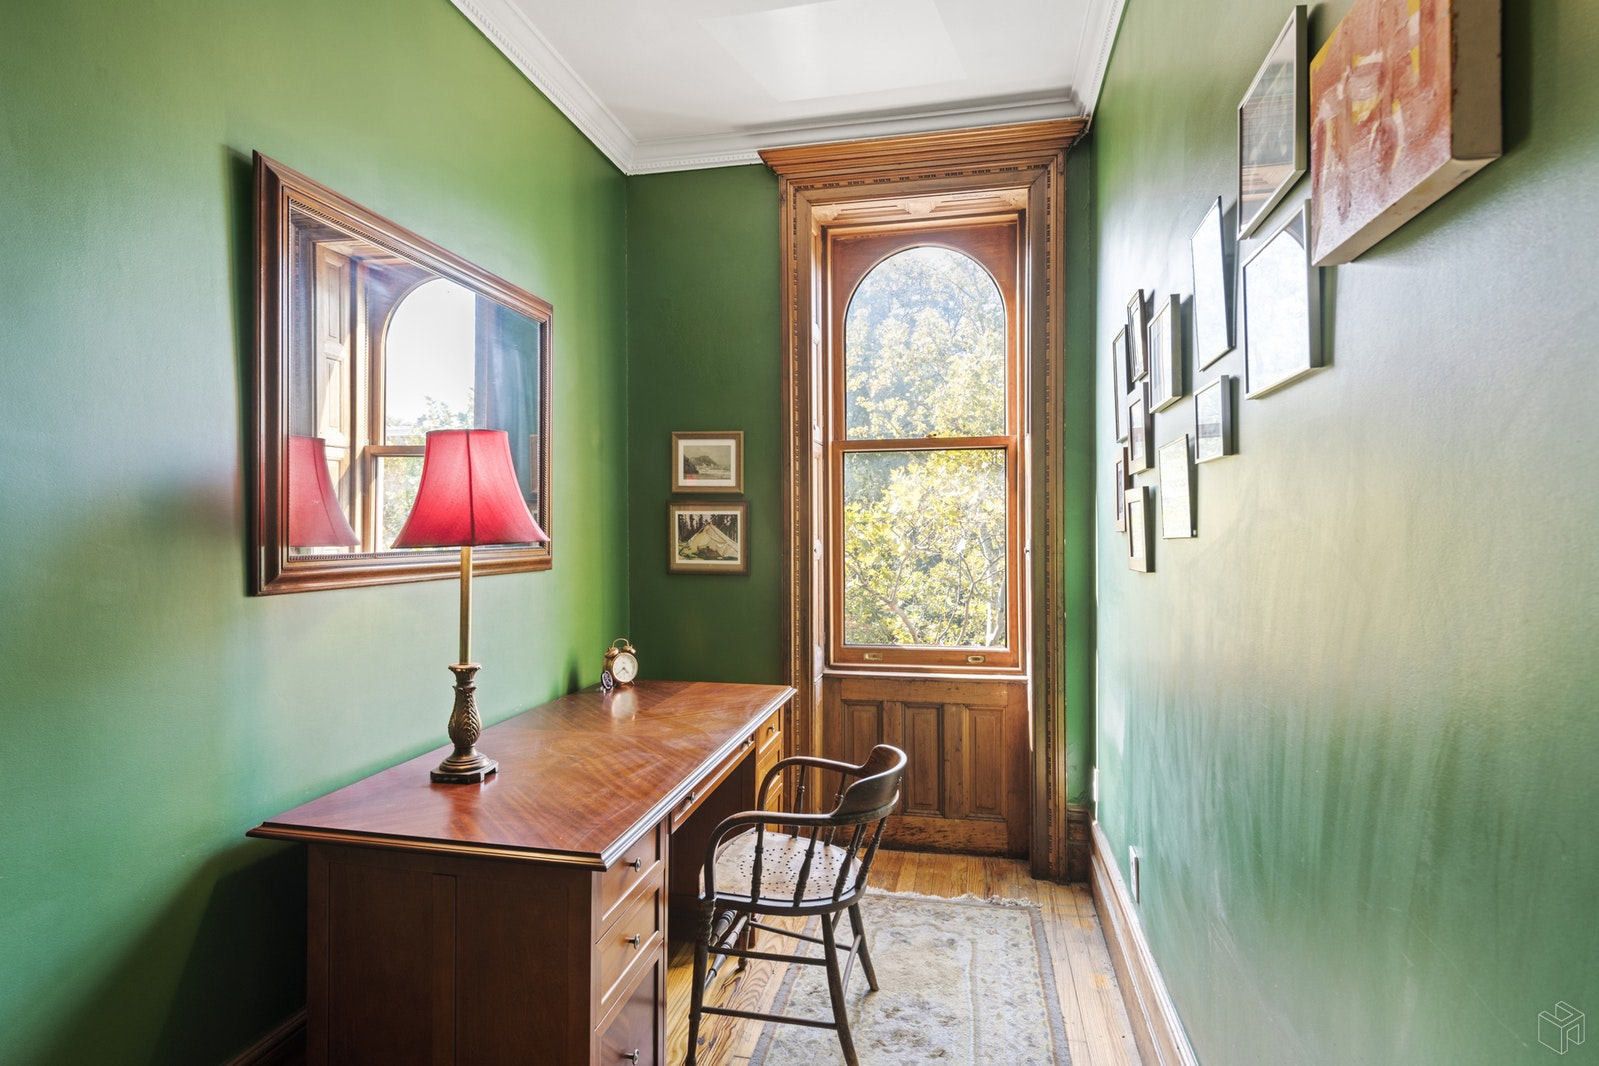 Illustrious Hamilton Heights Townhouse, Upper Manhattan, NYC, 10032, $2,795,000, Property For Sale, Halstead Real Estate, Photo 10